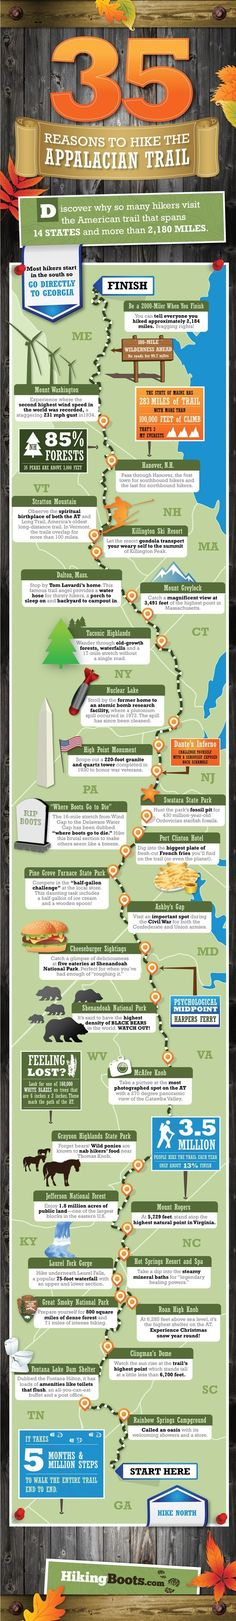 35 Reasons to Hike the Appalachian Trail (Infographic)